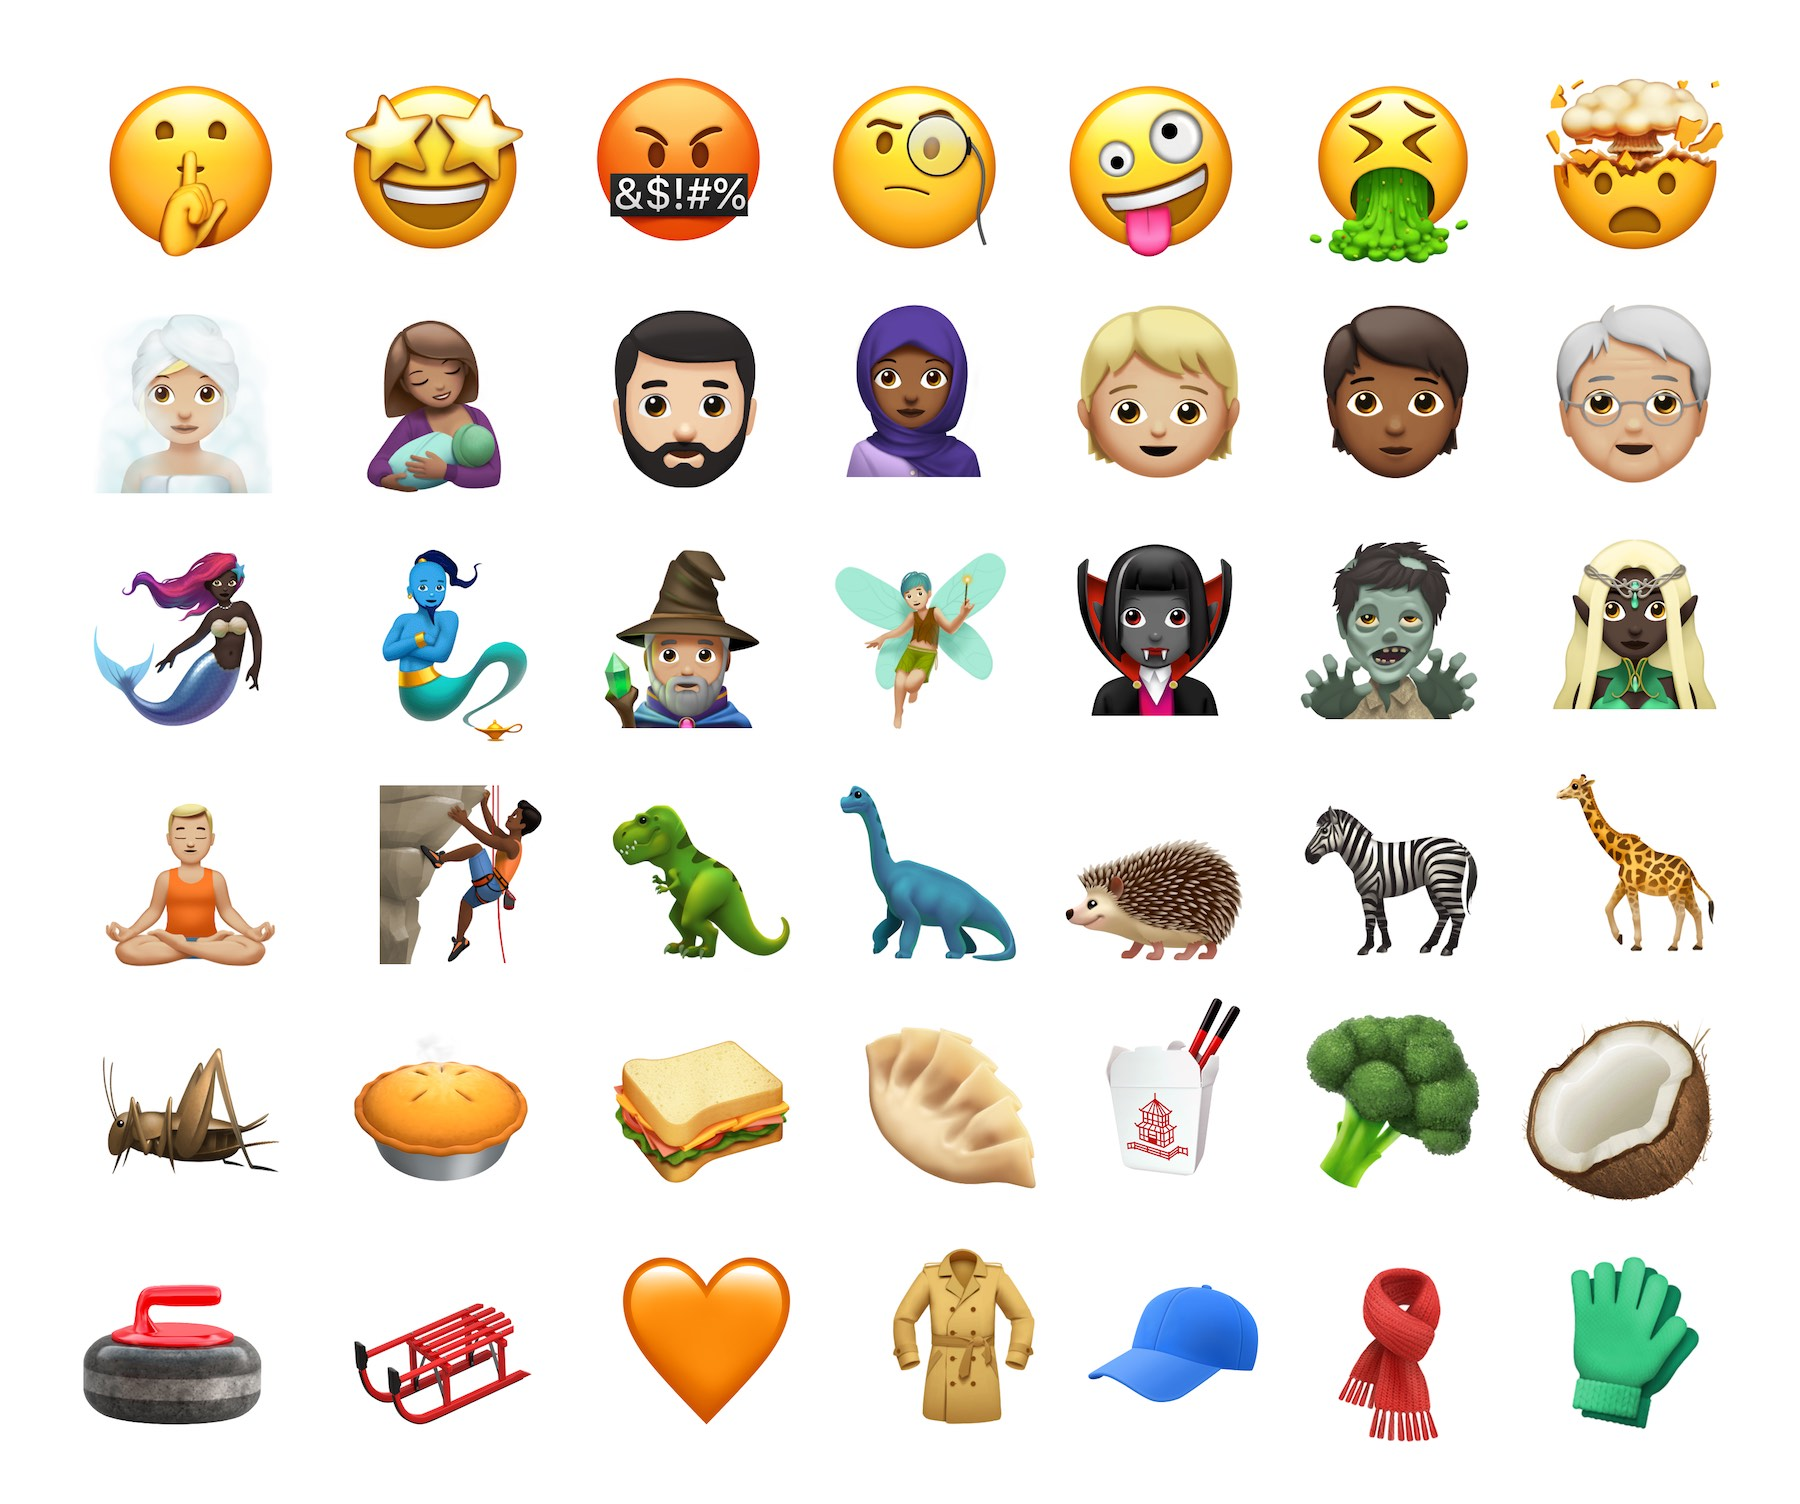 new iphone emojis new emojis in ios 11 1